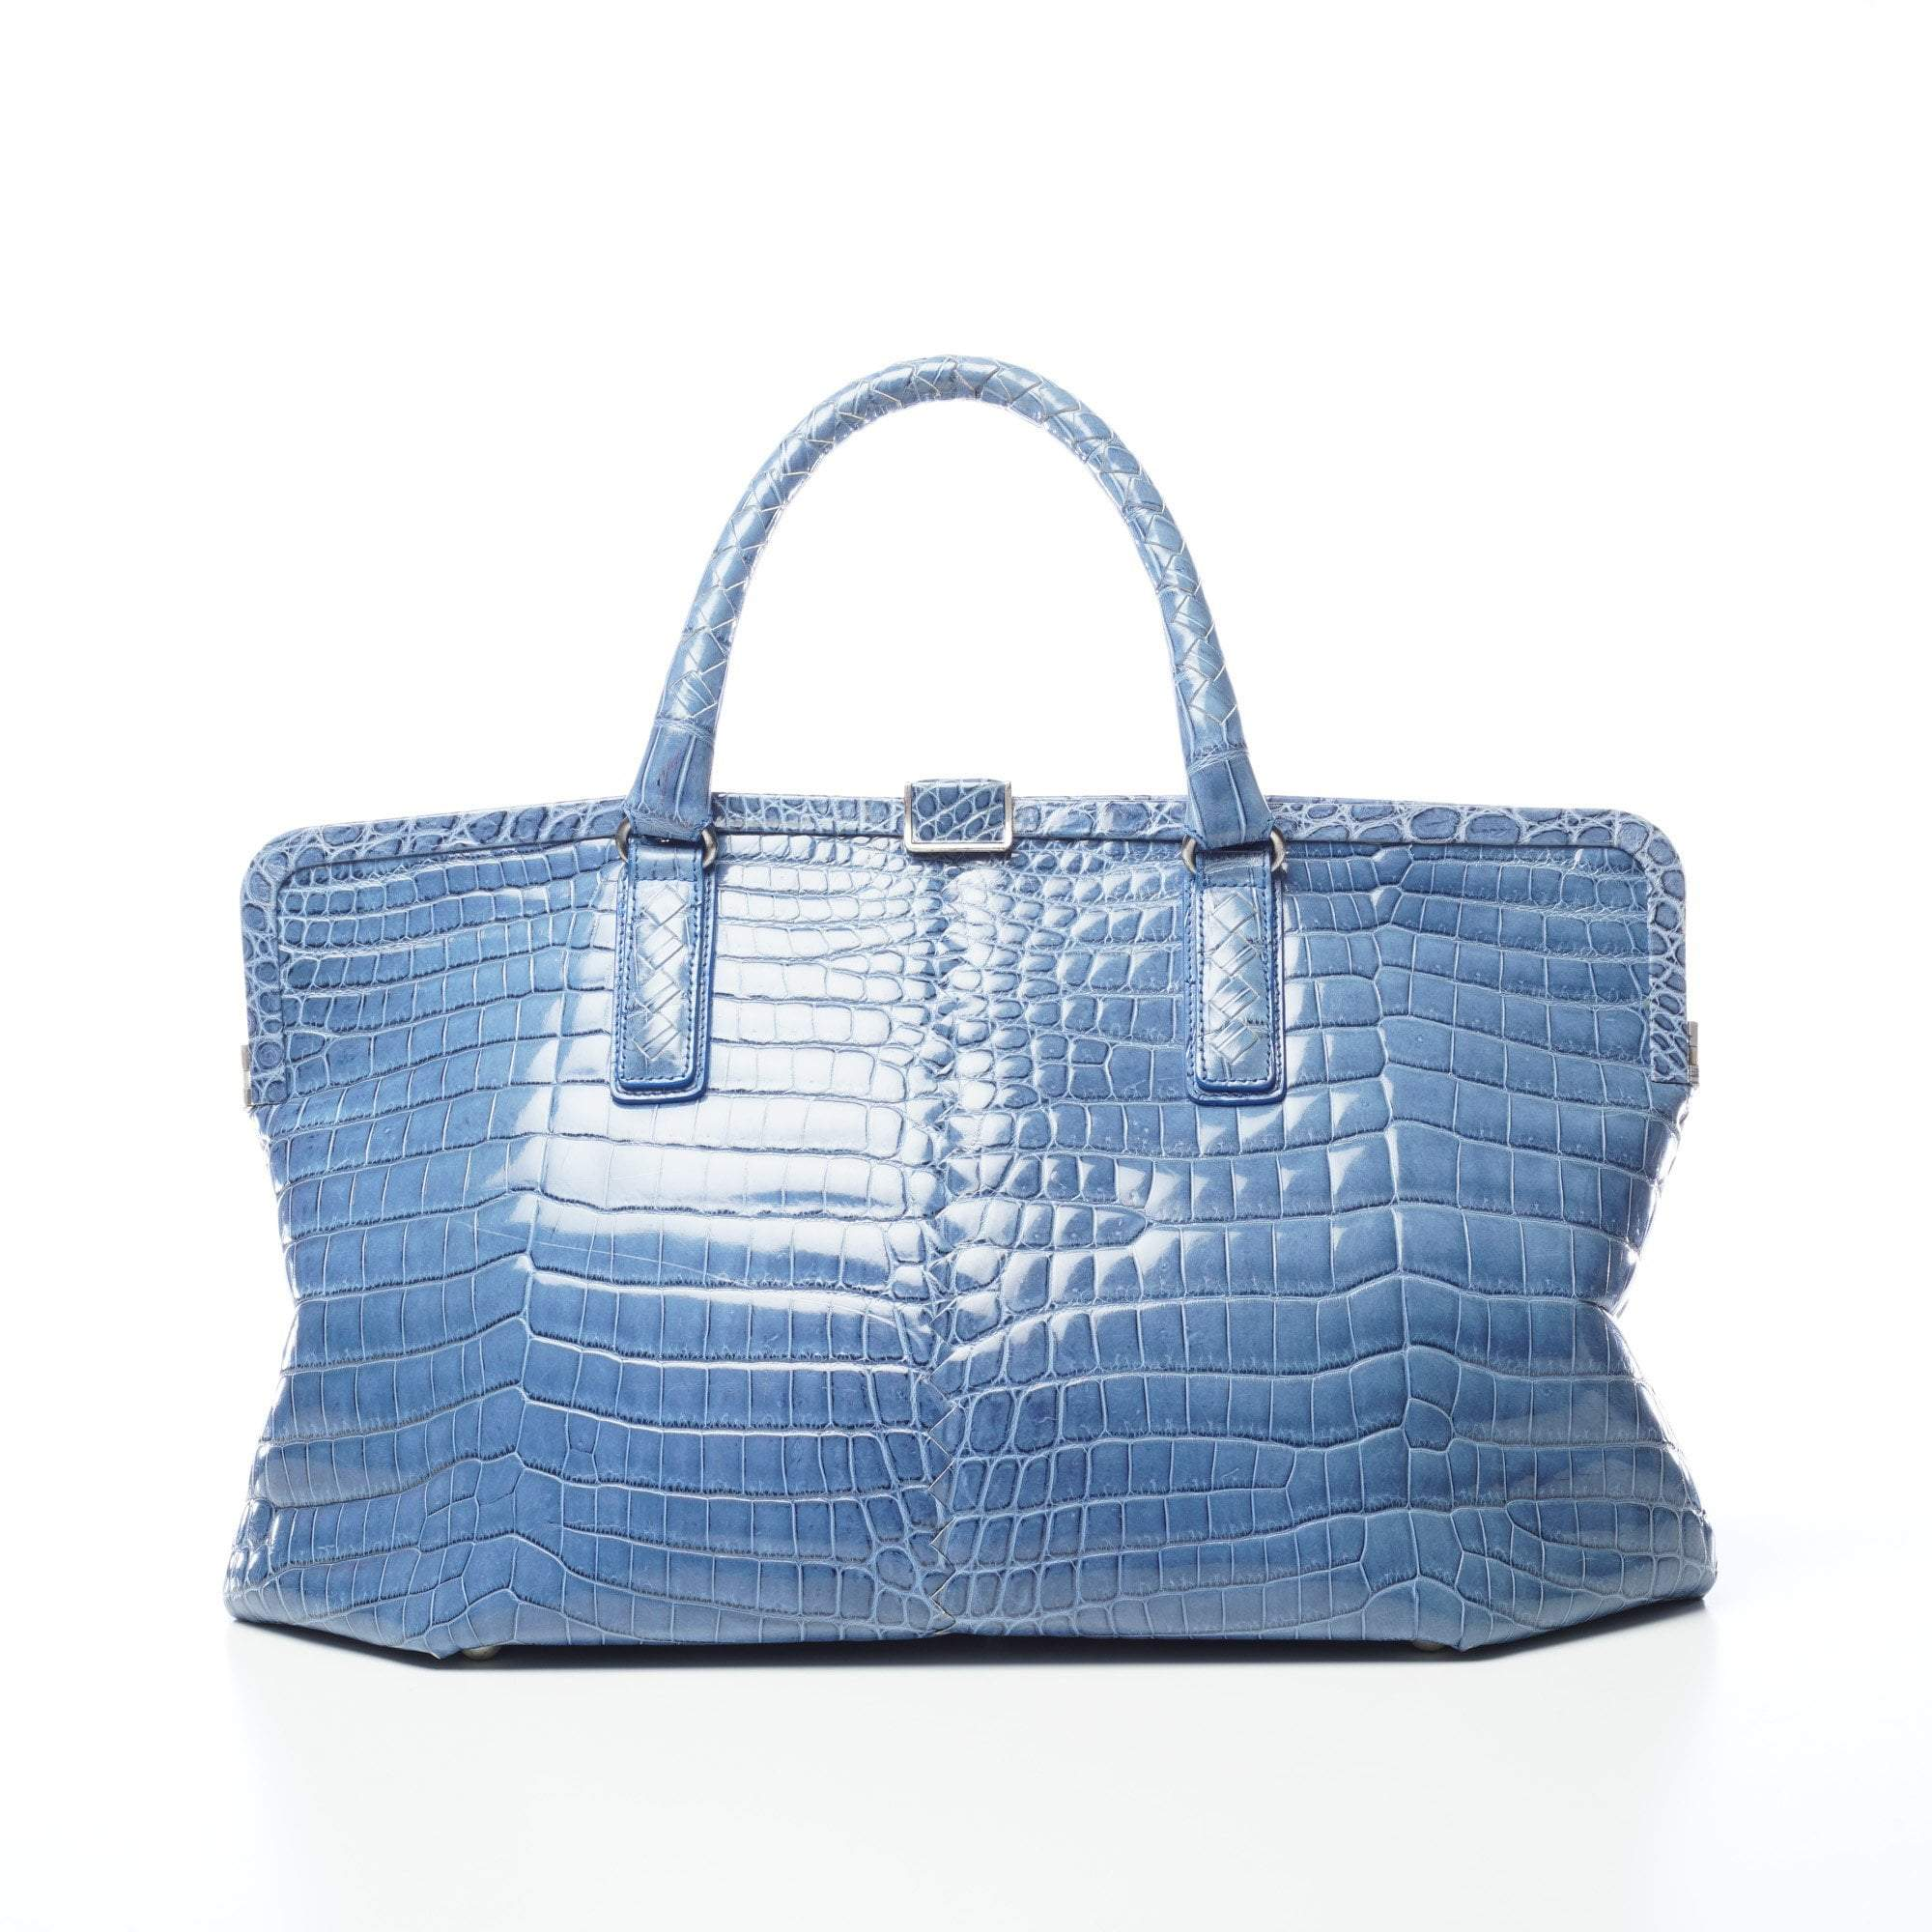 08f3857becaa Bottega Veneta Crocodile Tote Blue Bag – Garderobe